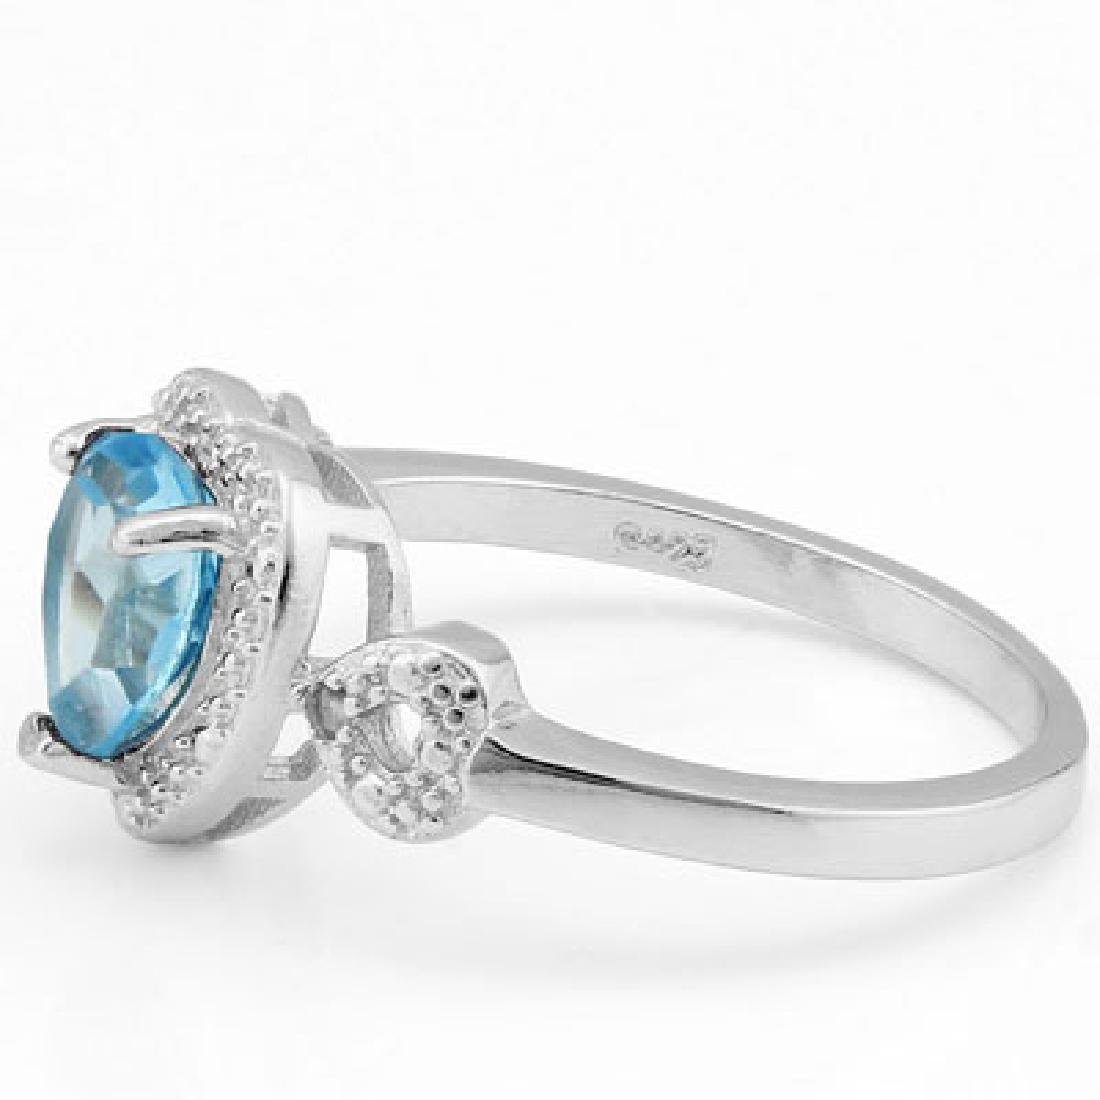 1.412 CARAT TW BLUE TOPAZ & GENUINE DIAMOND PLATINUM OV